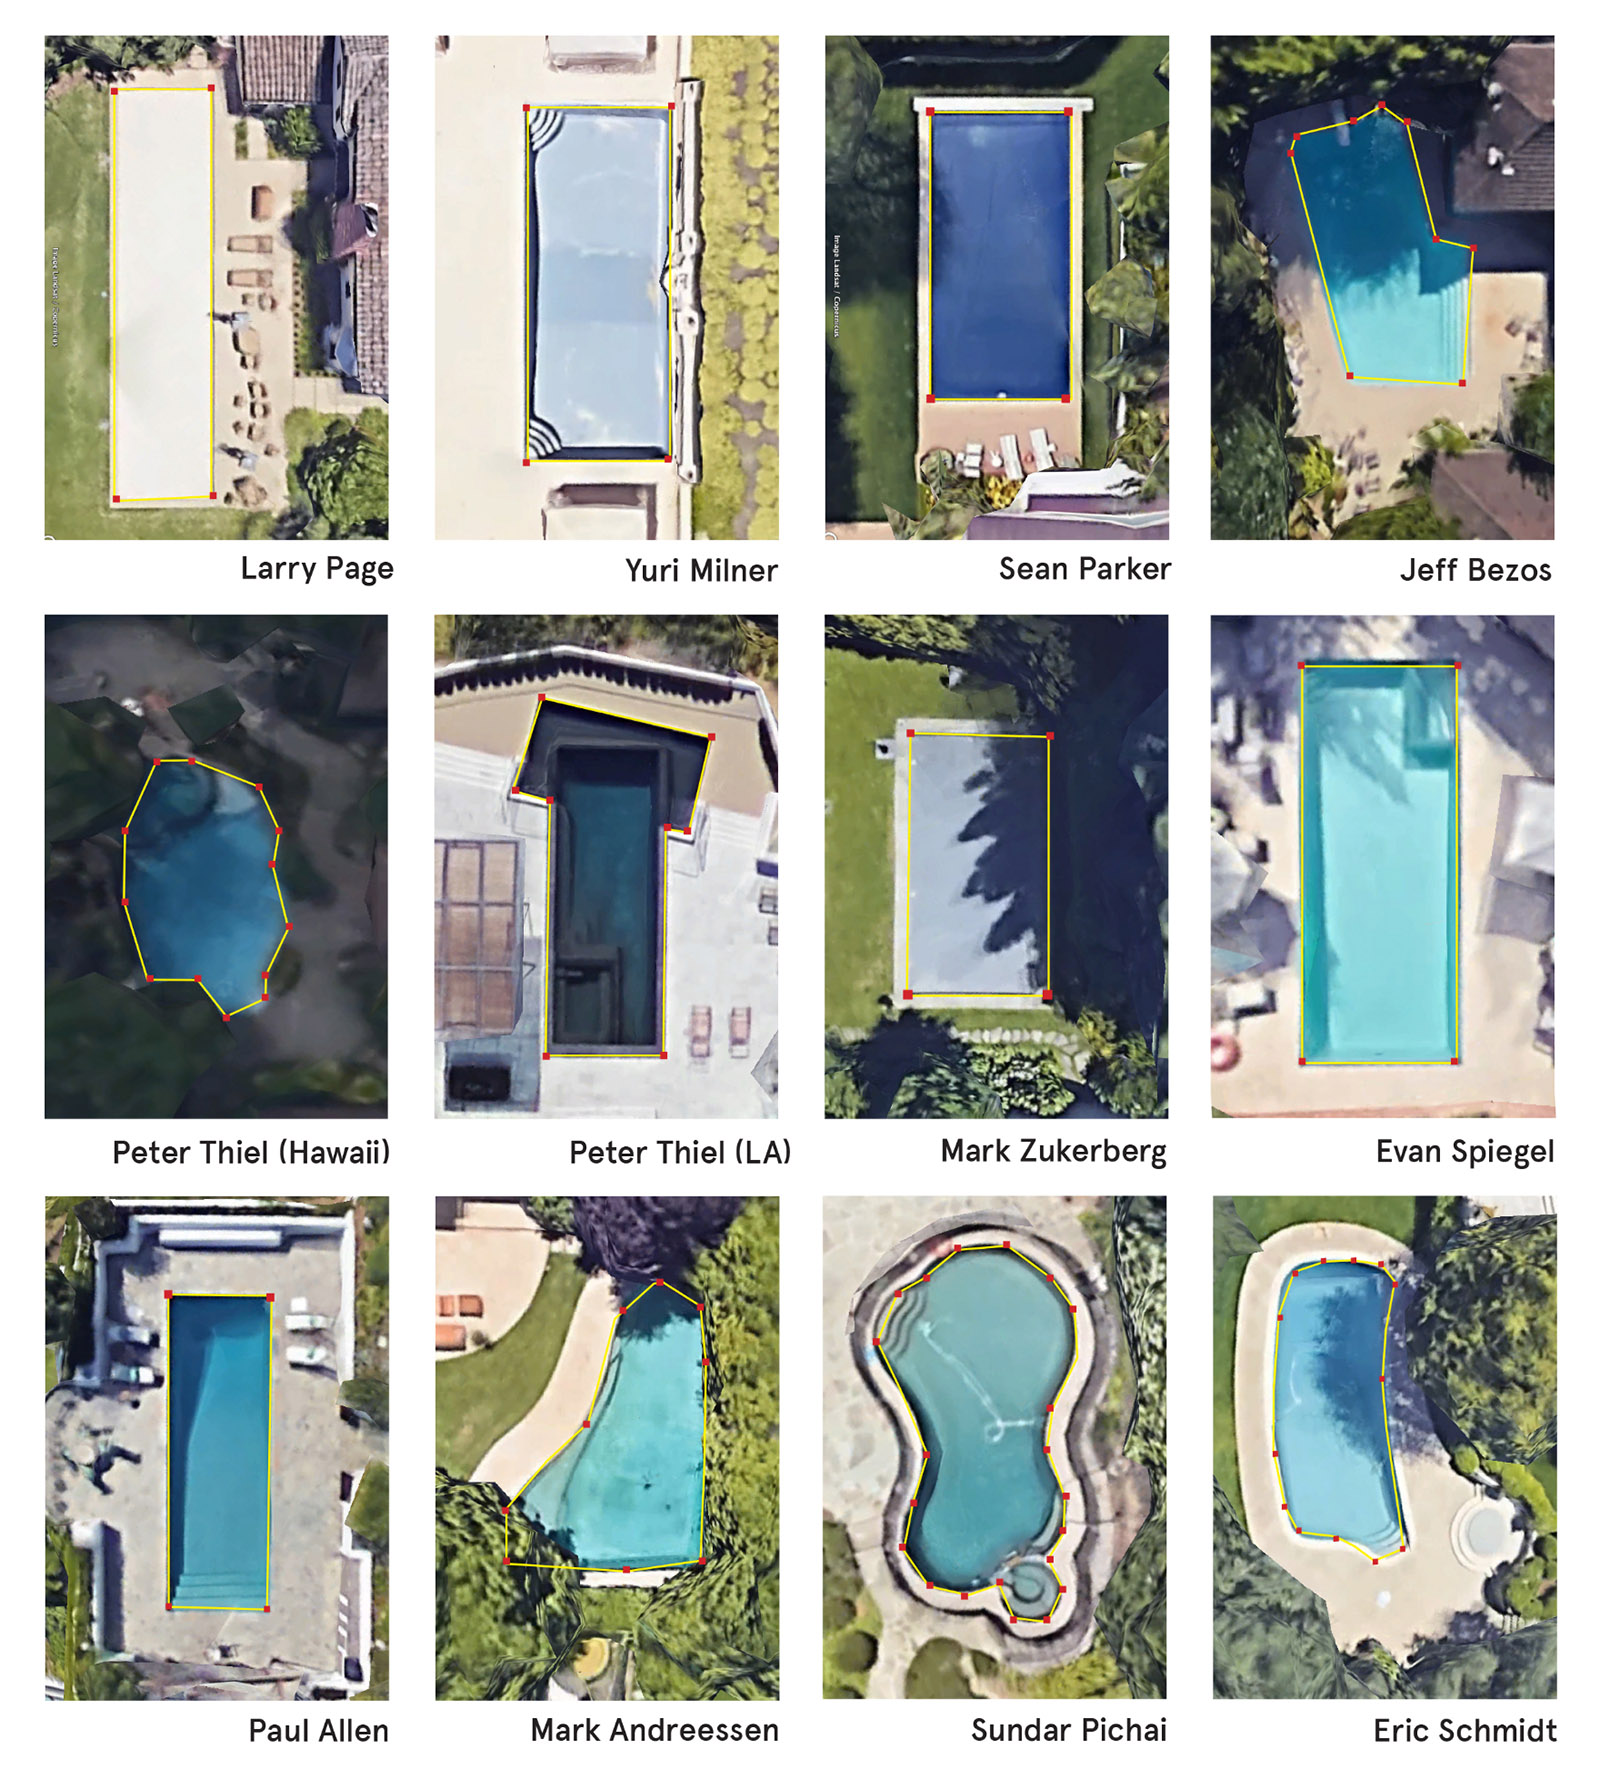 'Data Pools'; a geolocation spoofing project by Adam Harvey and Anastasia Kubrak that virtually relocated people's phones to the pools of Silicon Valley CEOs